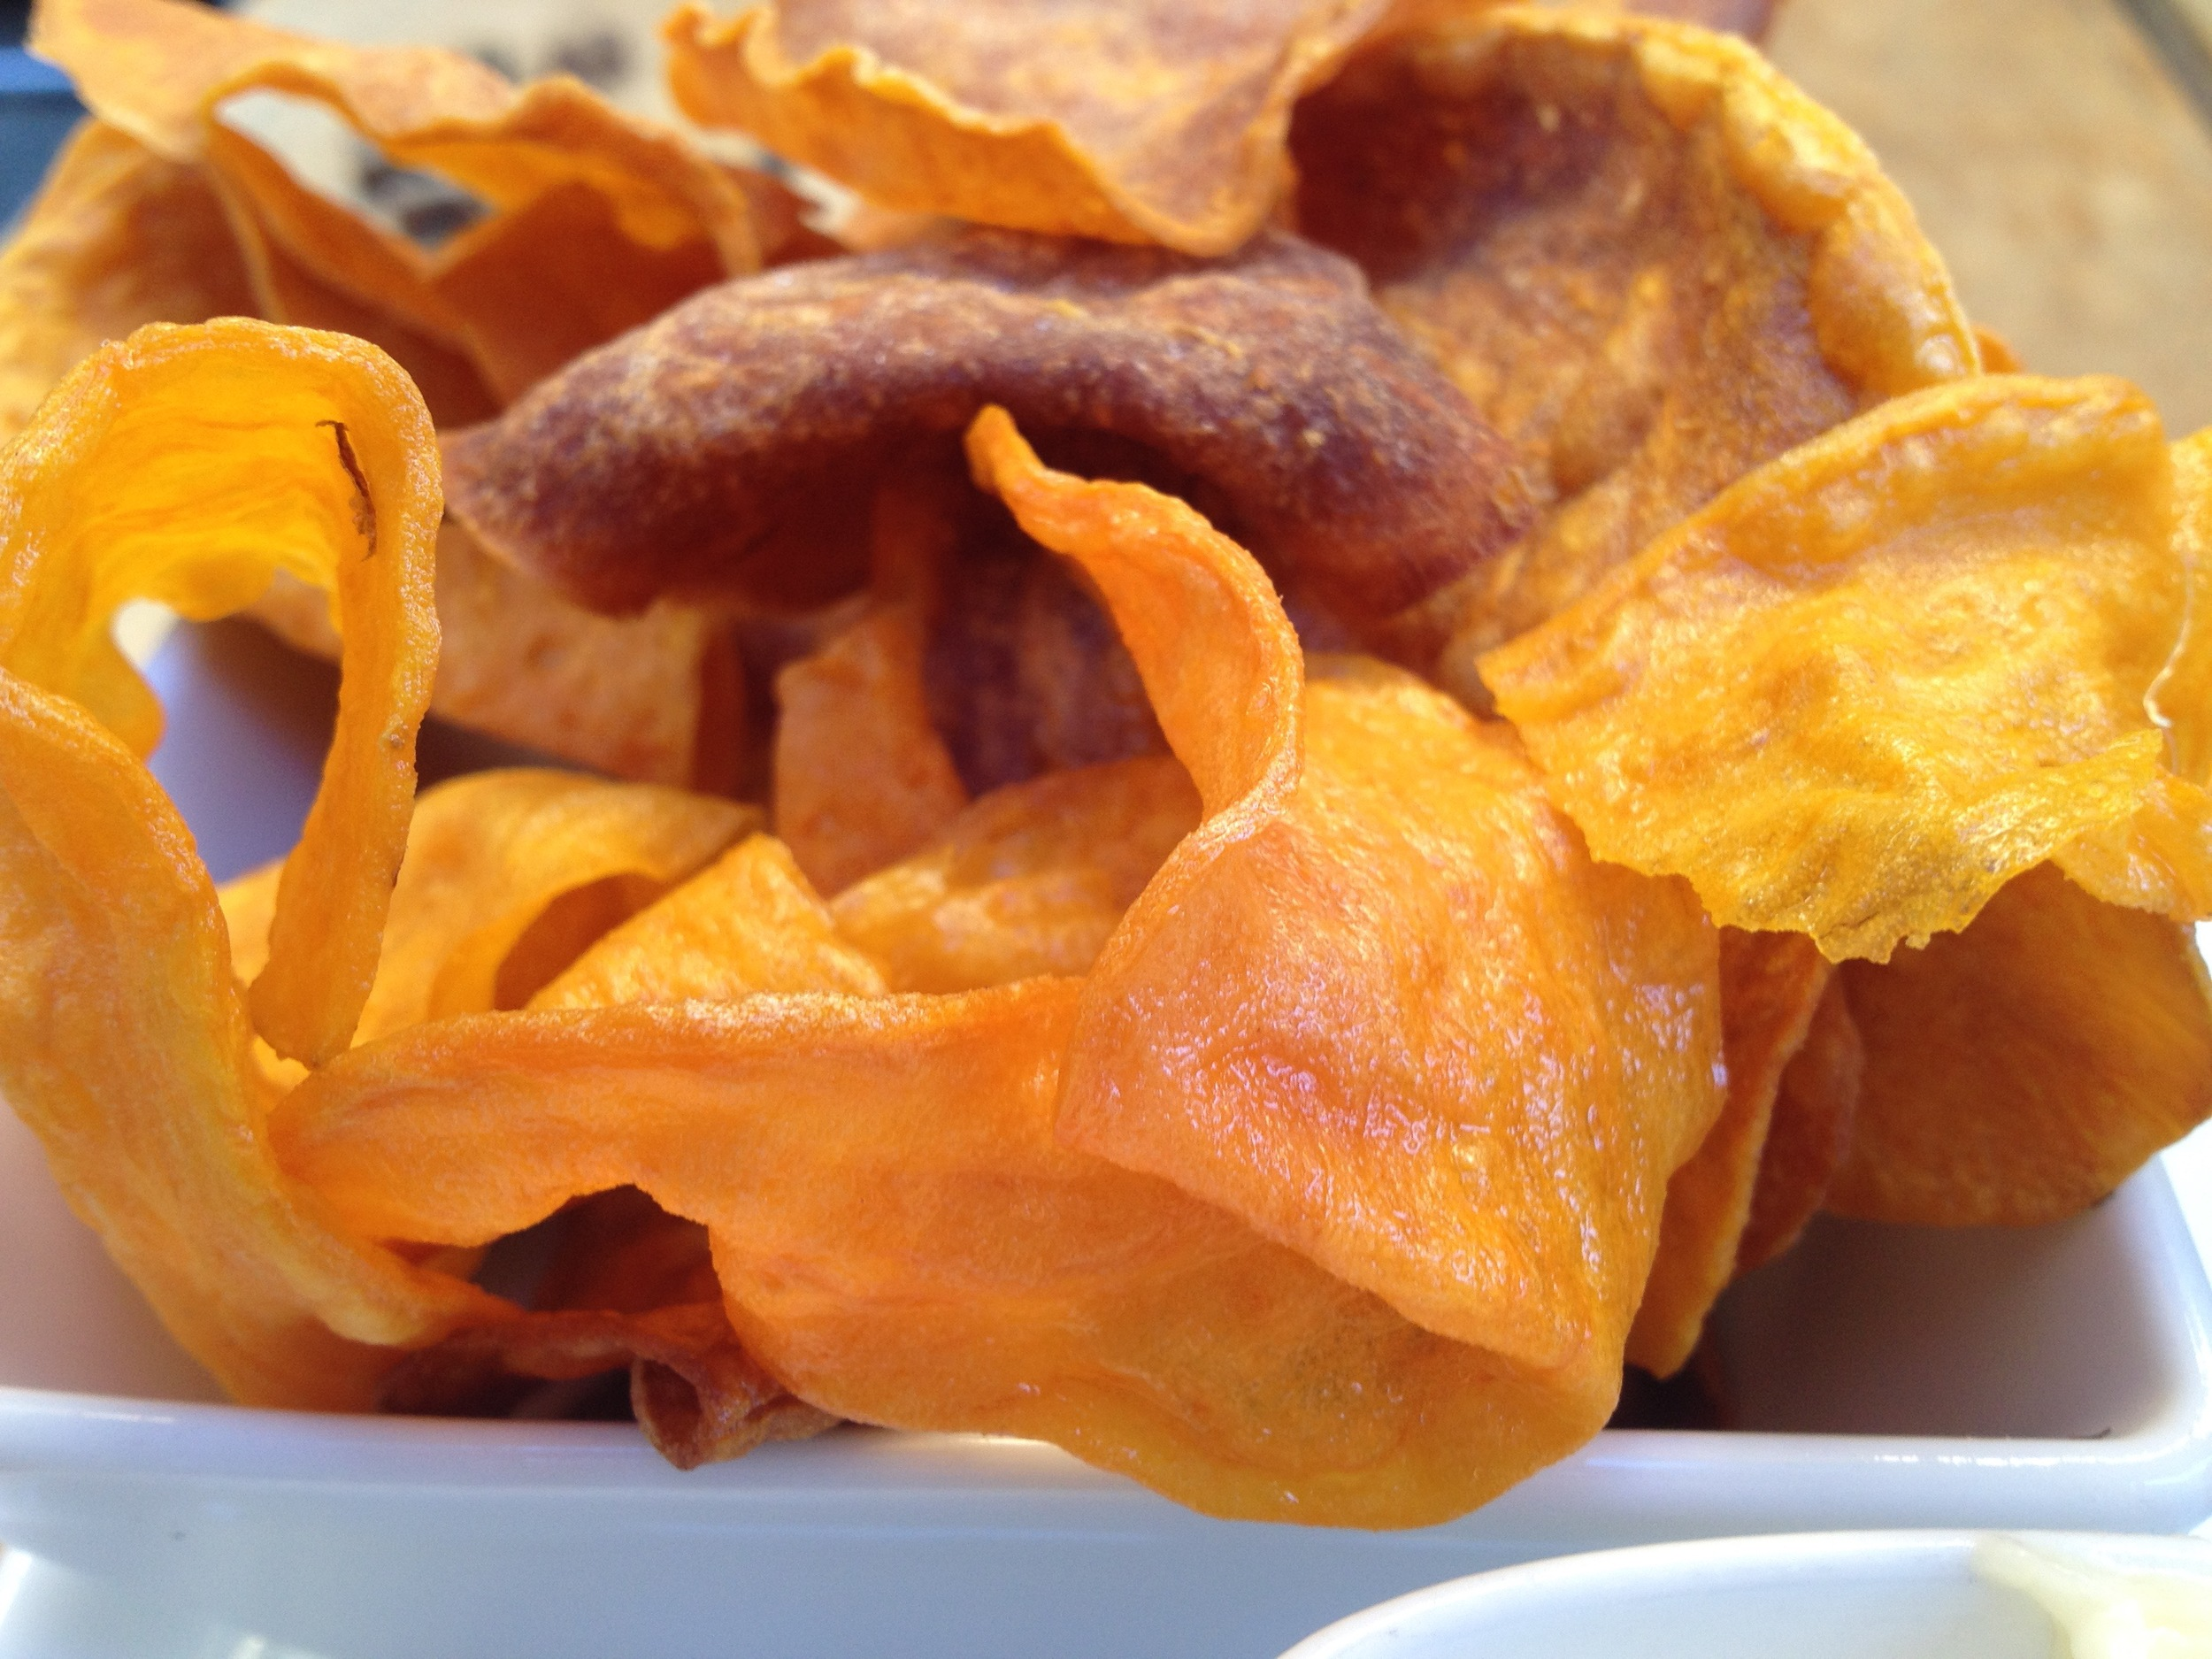 A close-up of the fresh-fried sweet potato chips